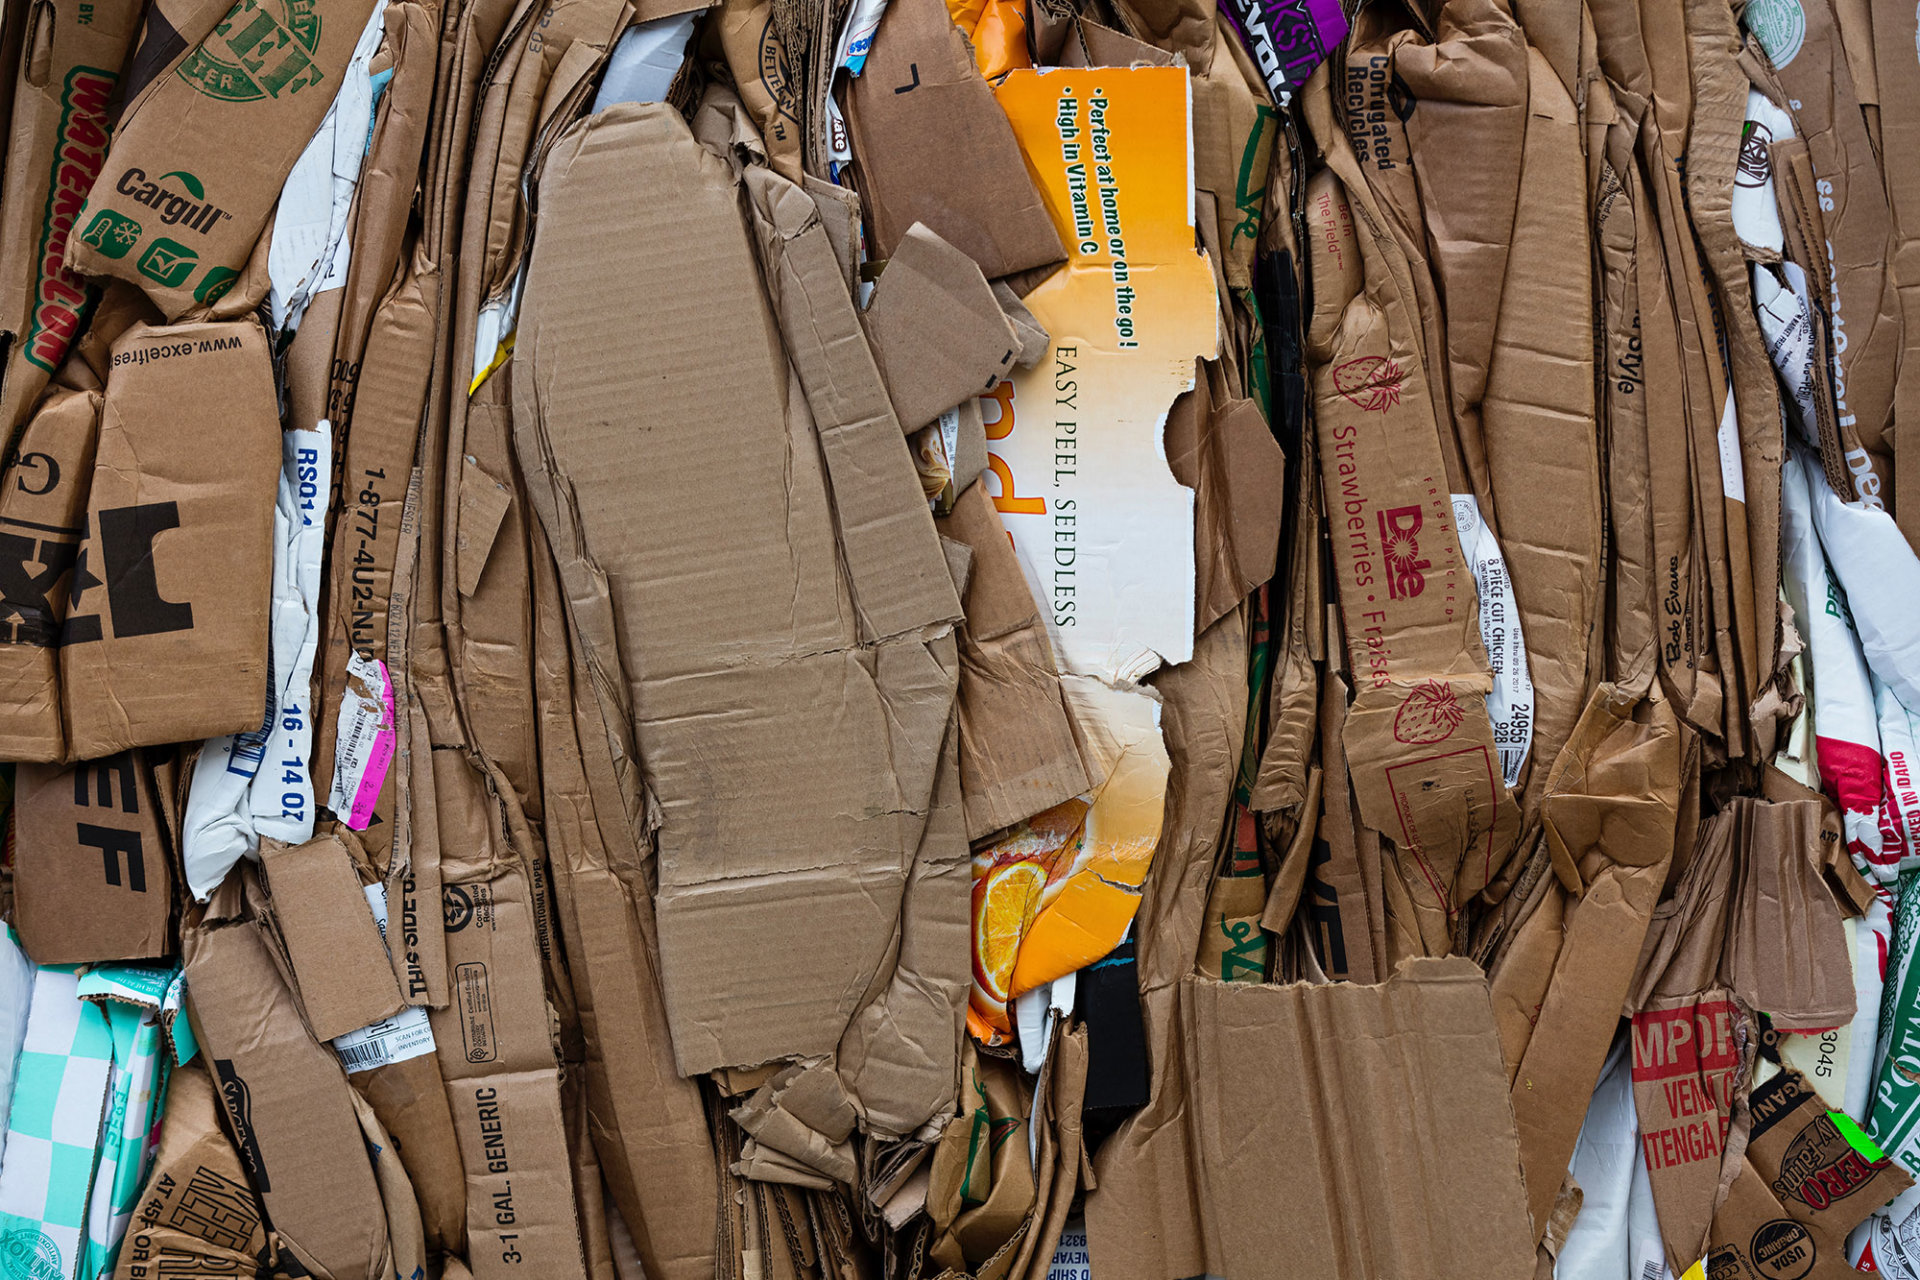 Switch to recycled paper and cardboard products